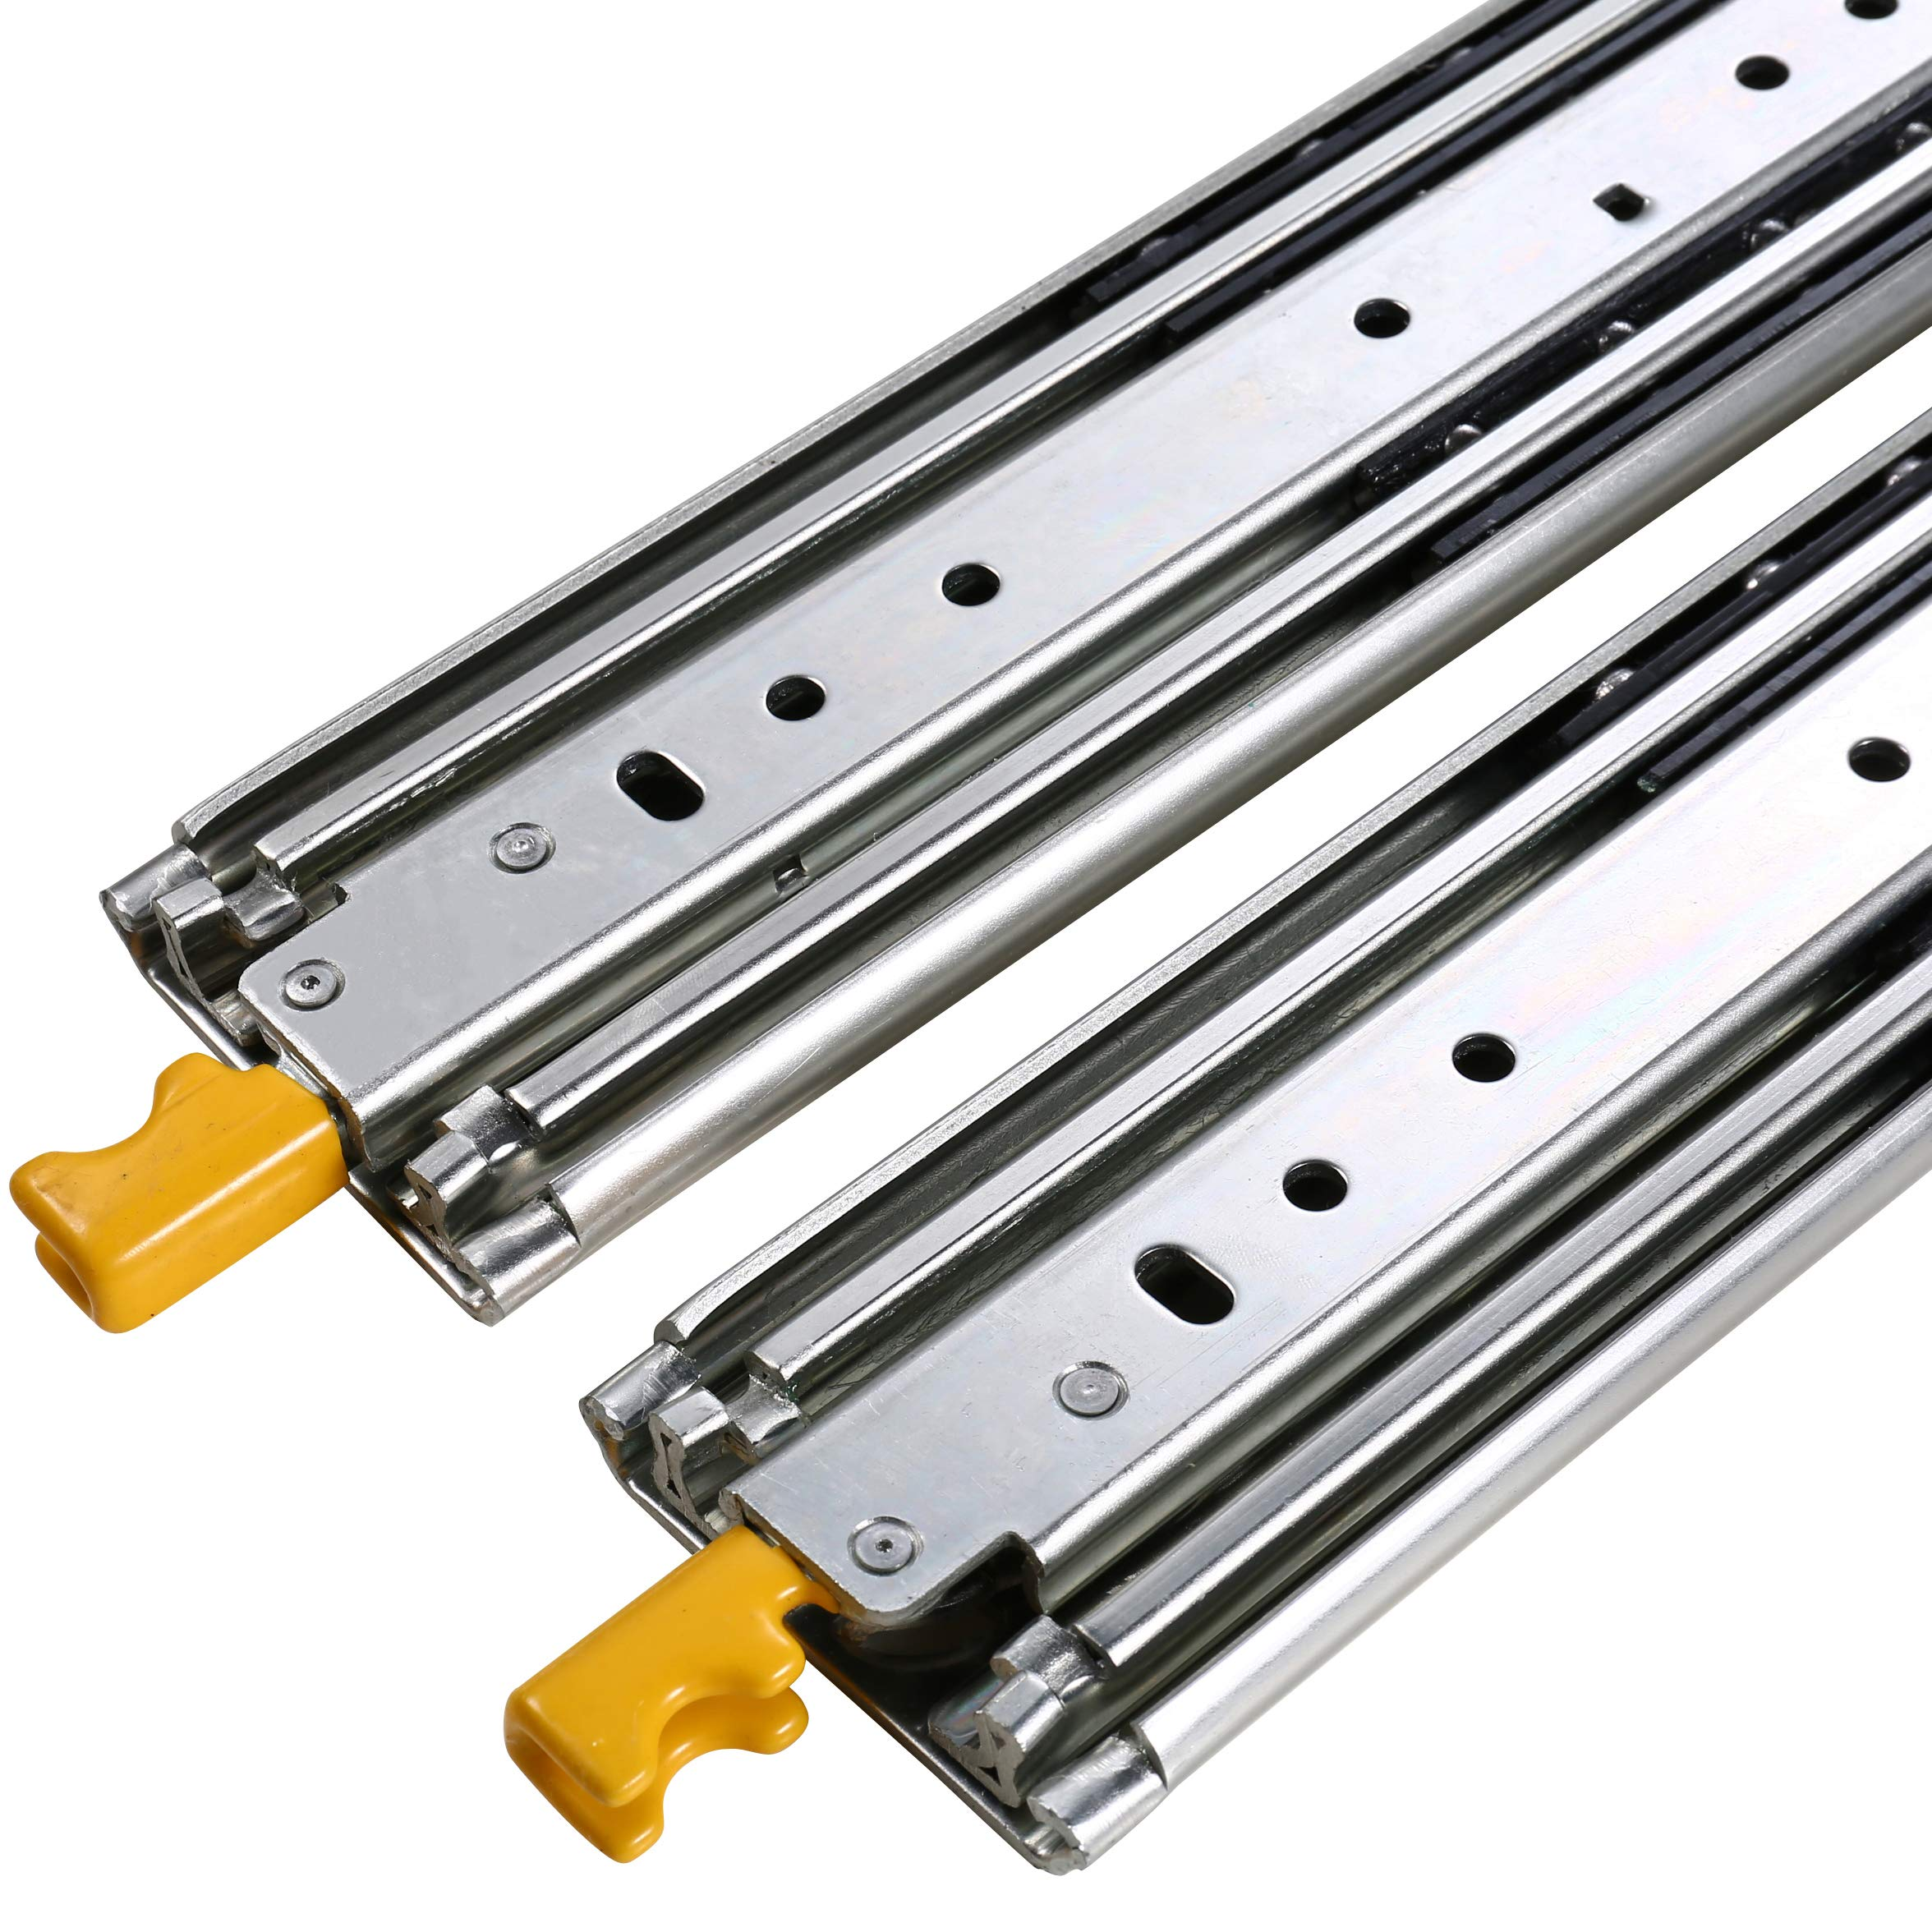 SDPAWA Heavy Duty Drawer Slides 26 Inch with Lock 3 Sections Ball Bearing Full Extension Drawer Sliding Rails Side Mount 480lbs Loading Capacity